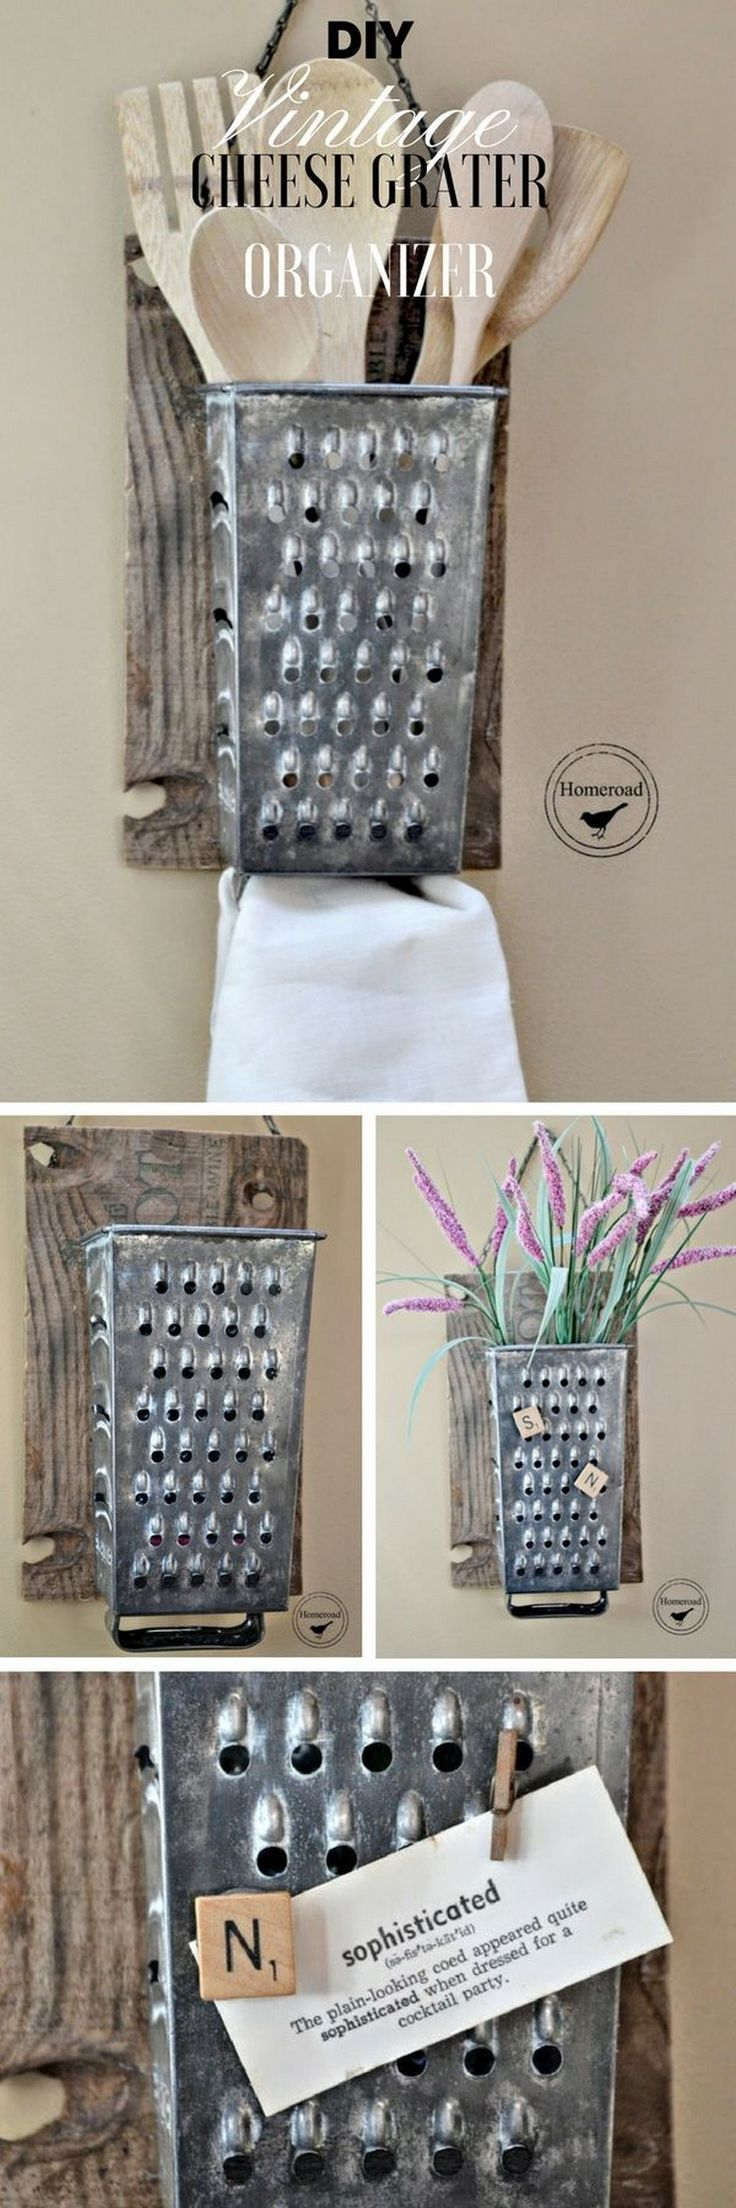 Best 25 rustic home decorating ideas on pinterest dog decorations rustic industrial decor Cheap home decor on pinterest